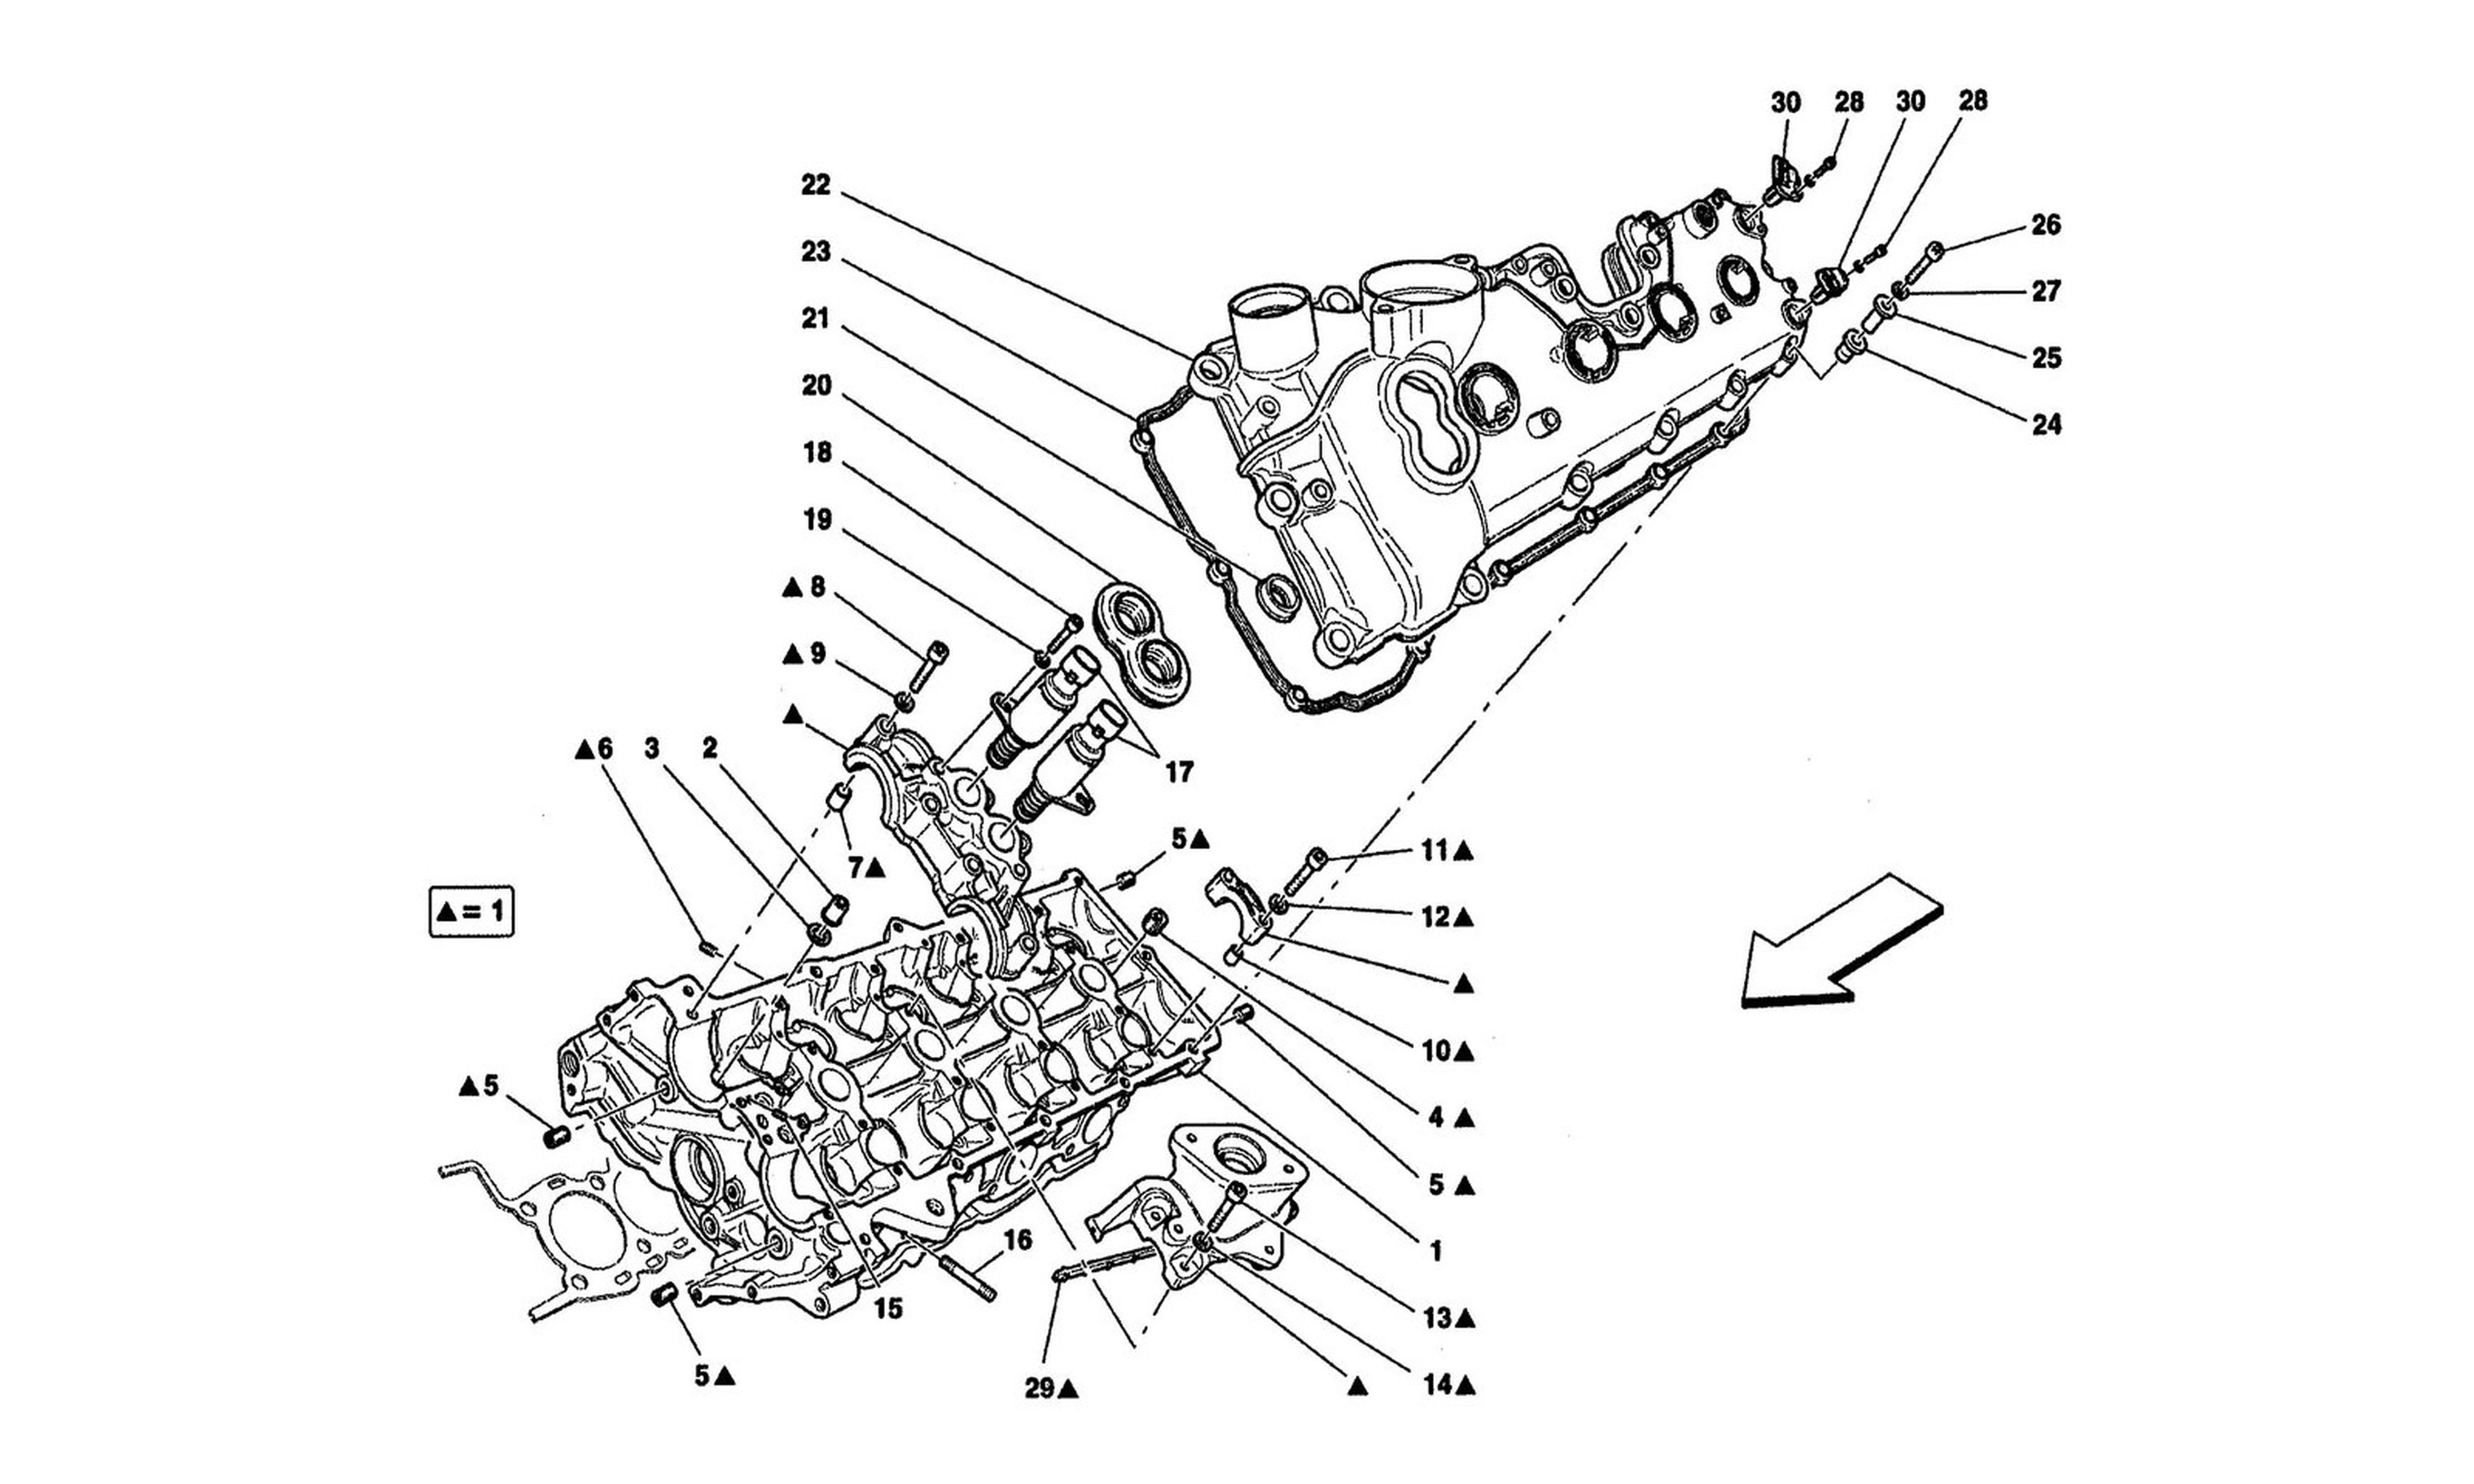 Table 4 - Lh Cylinder Head